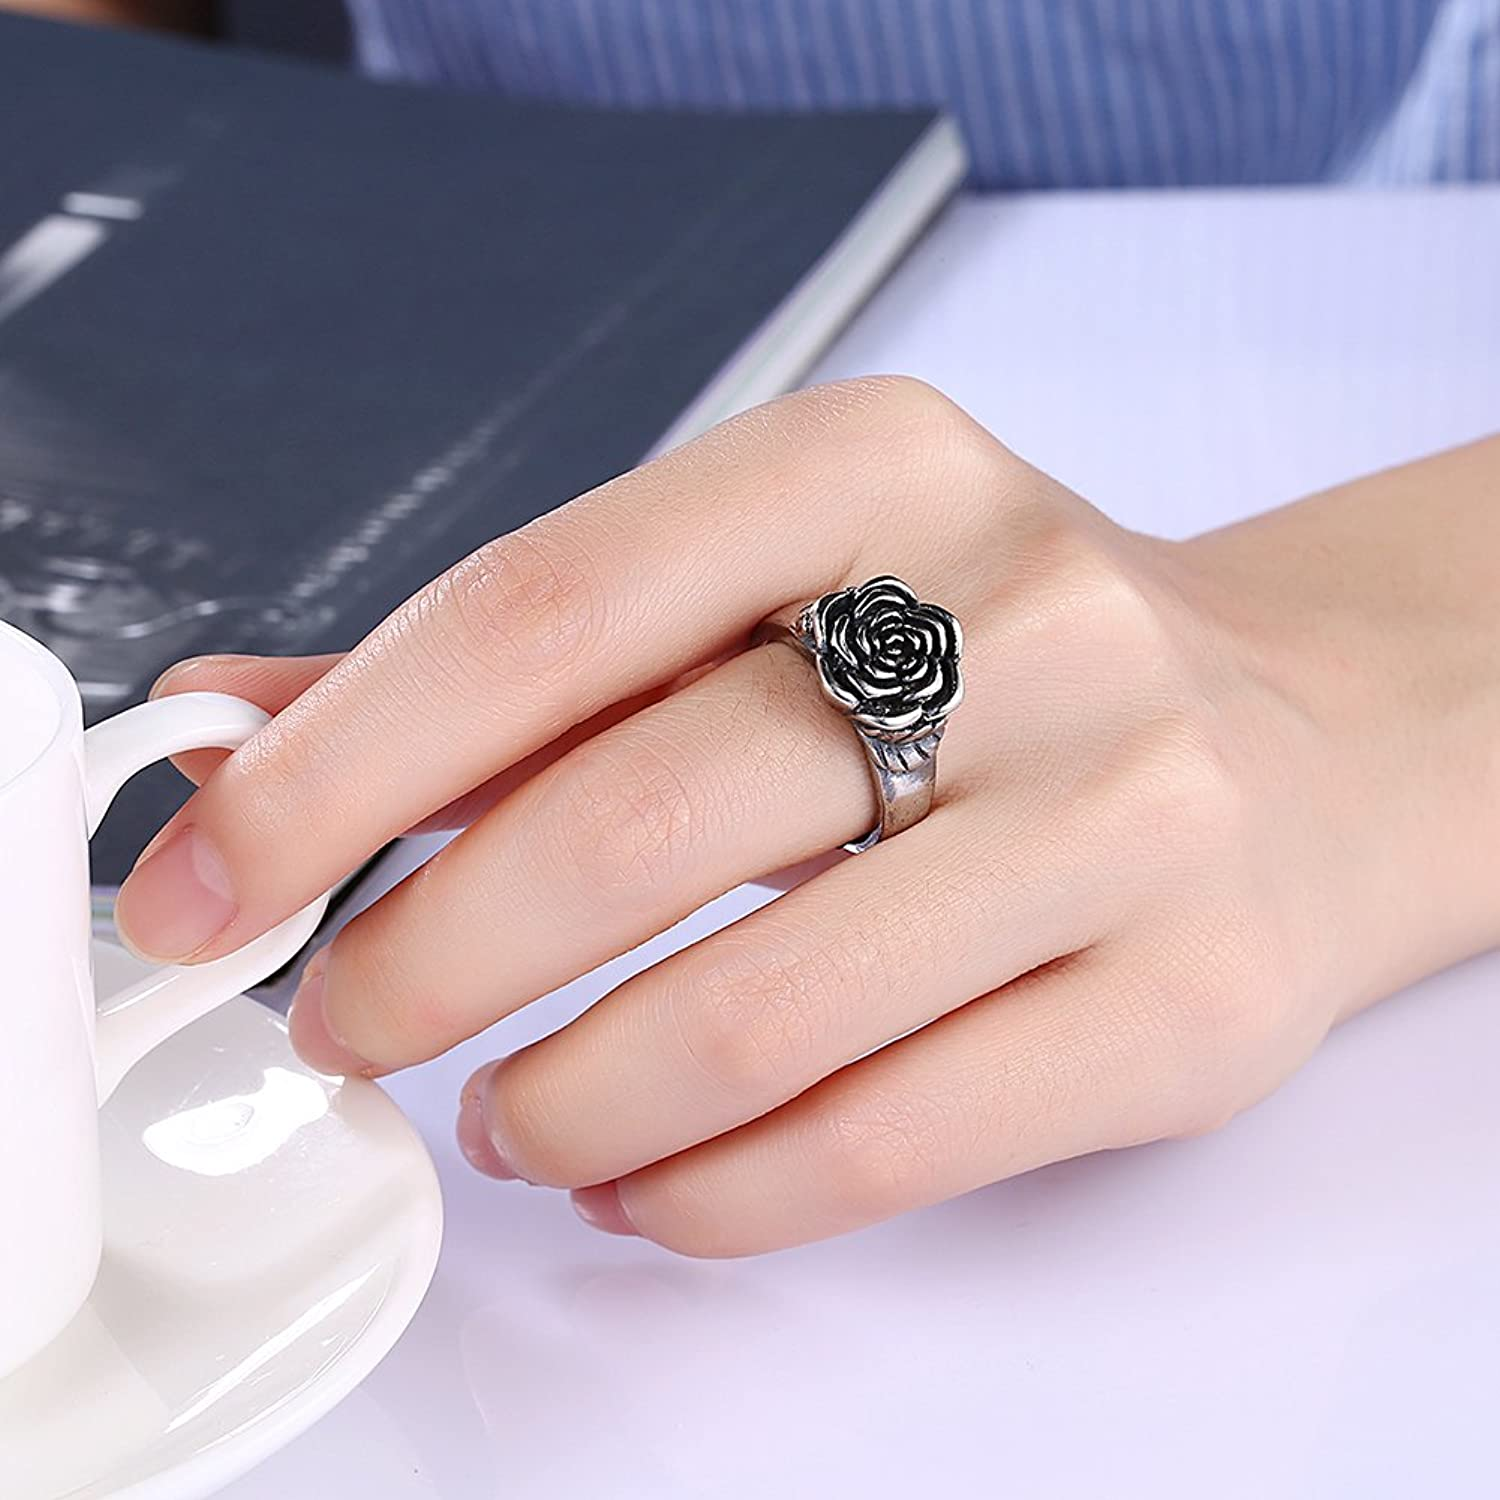 Beautiful Rose Flower Ring Finger Ring Female Retro Fashion Jewelry ...